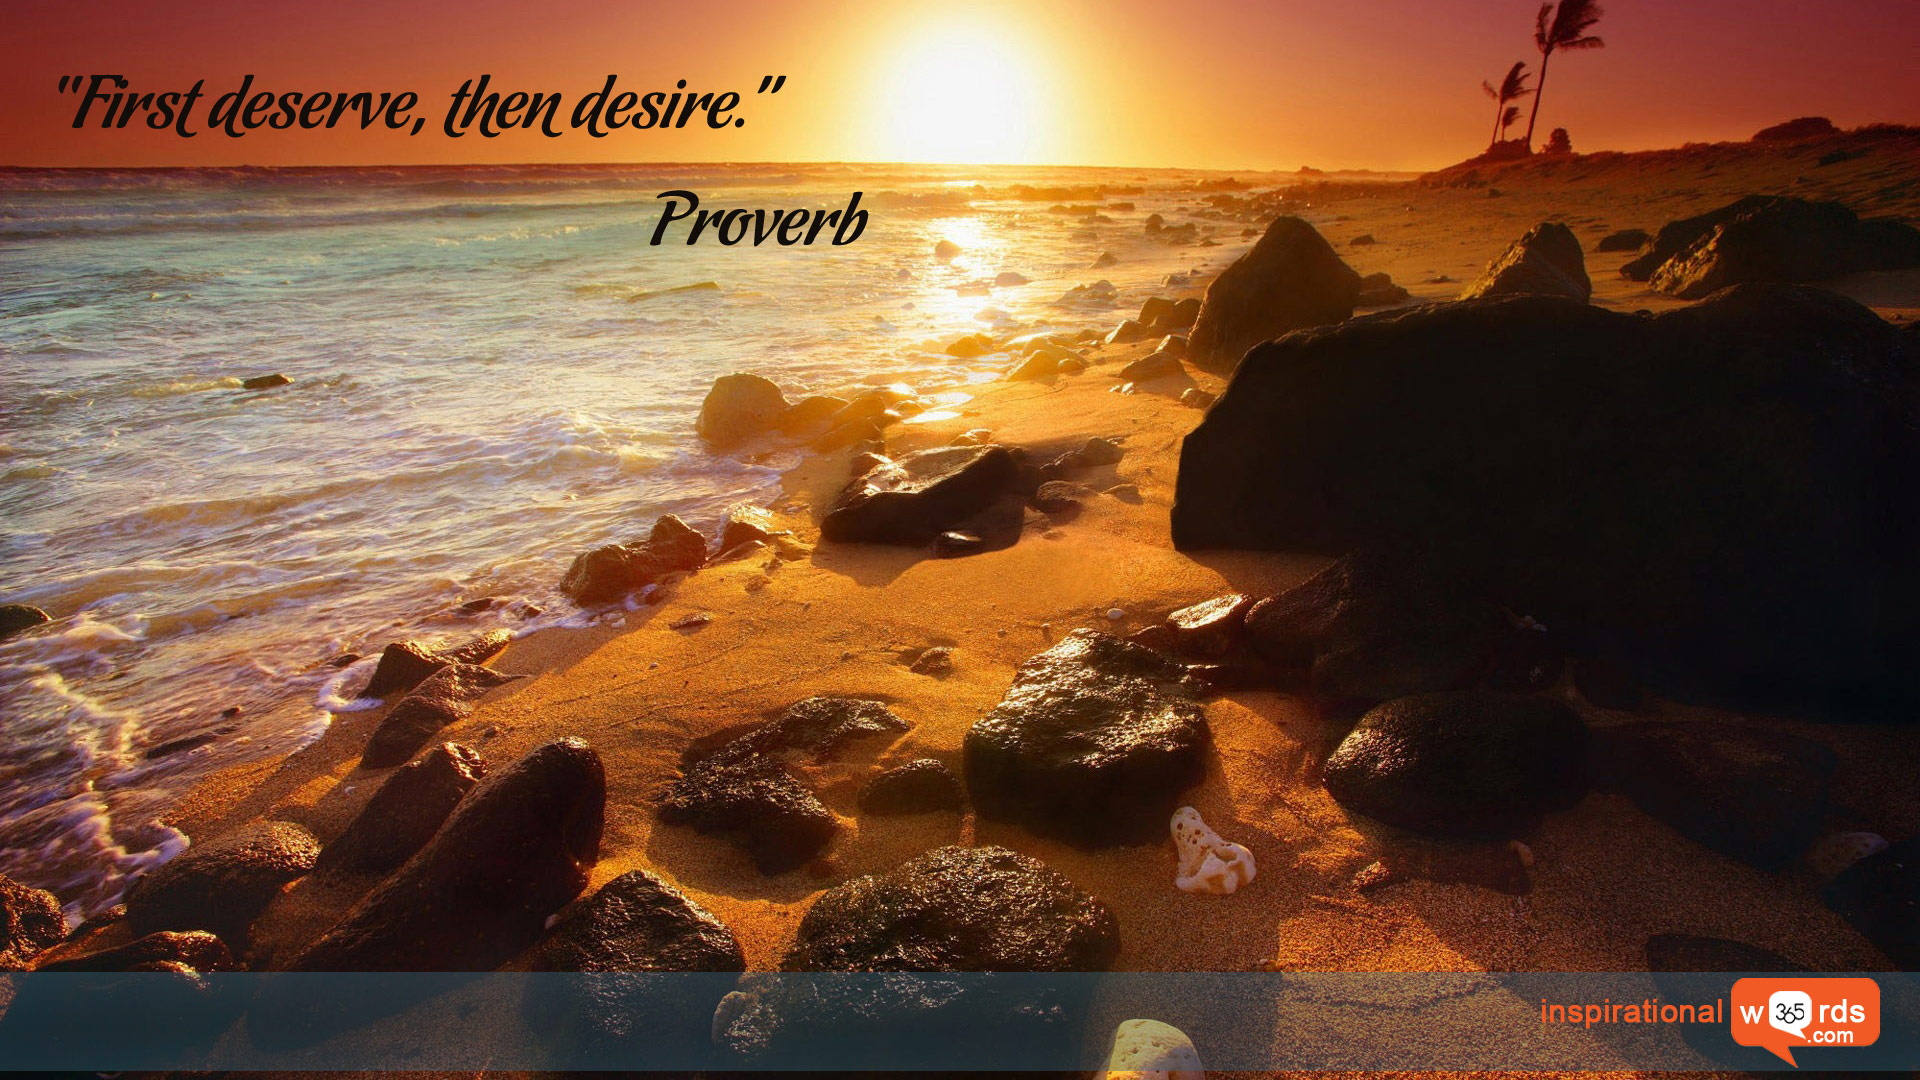 Inspirational Wallpaper Quote. Proverb